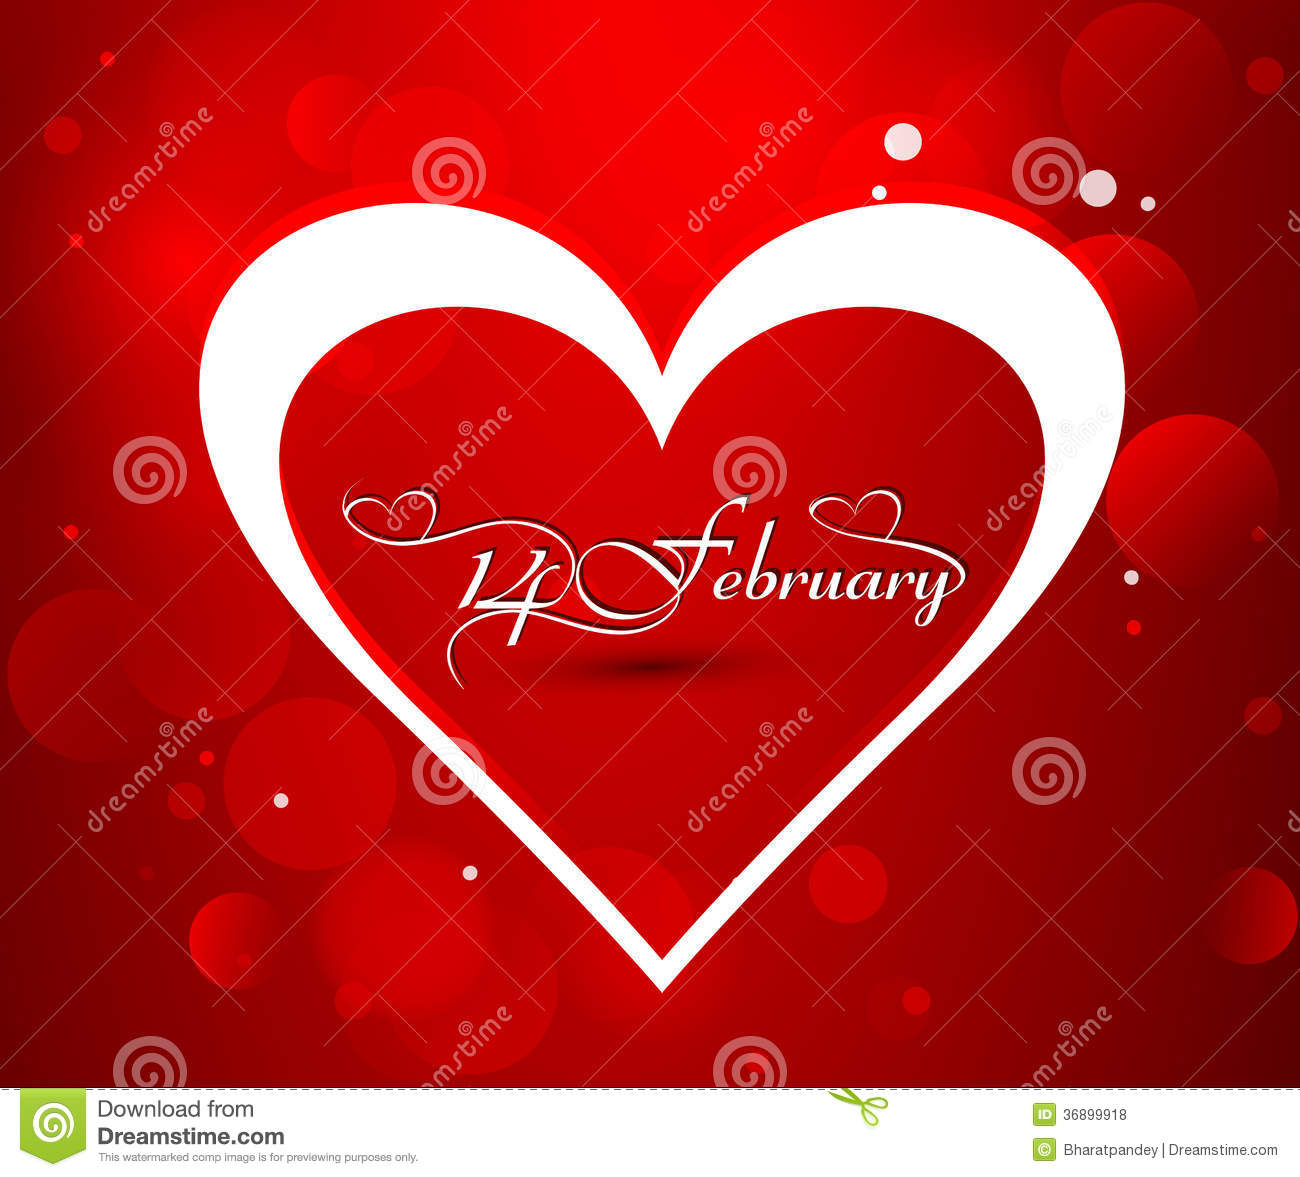 Beautiful Valentines Day Card With Heart 14 February Royalty Free – Beautiful Valentines Day Cards